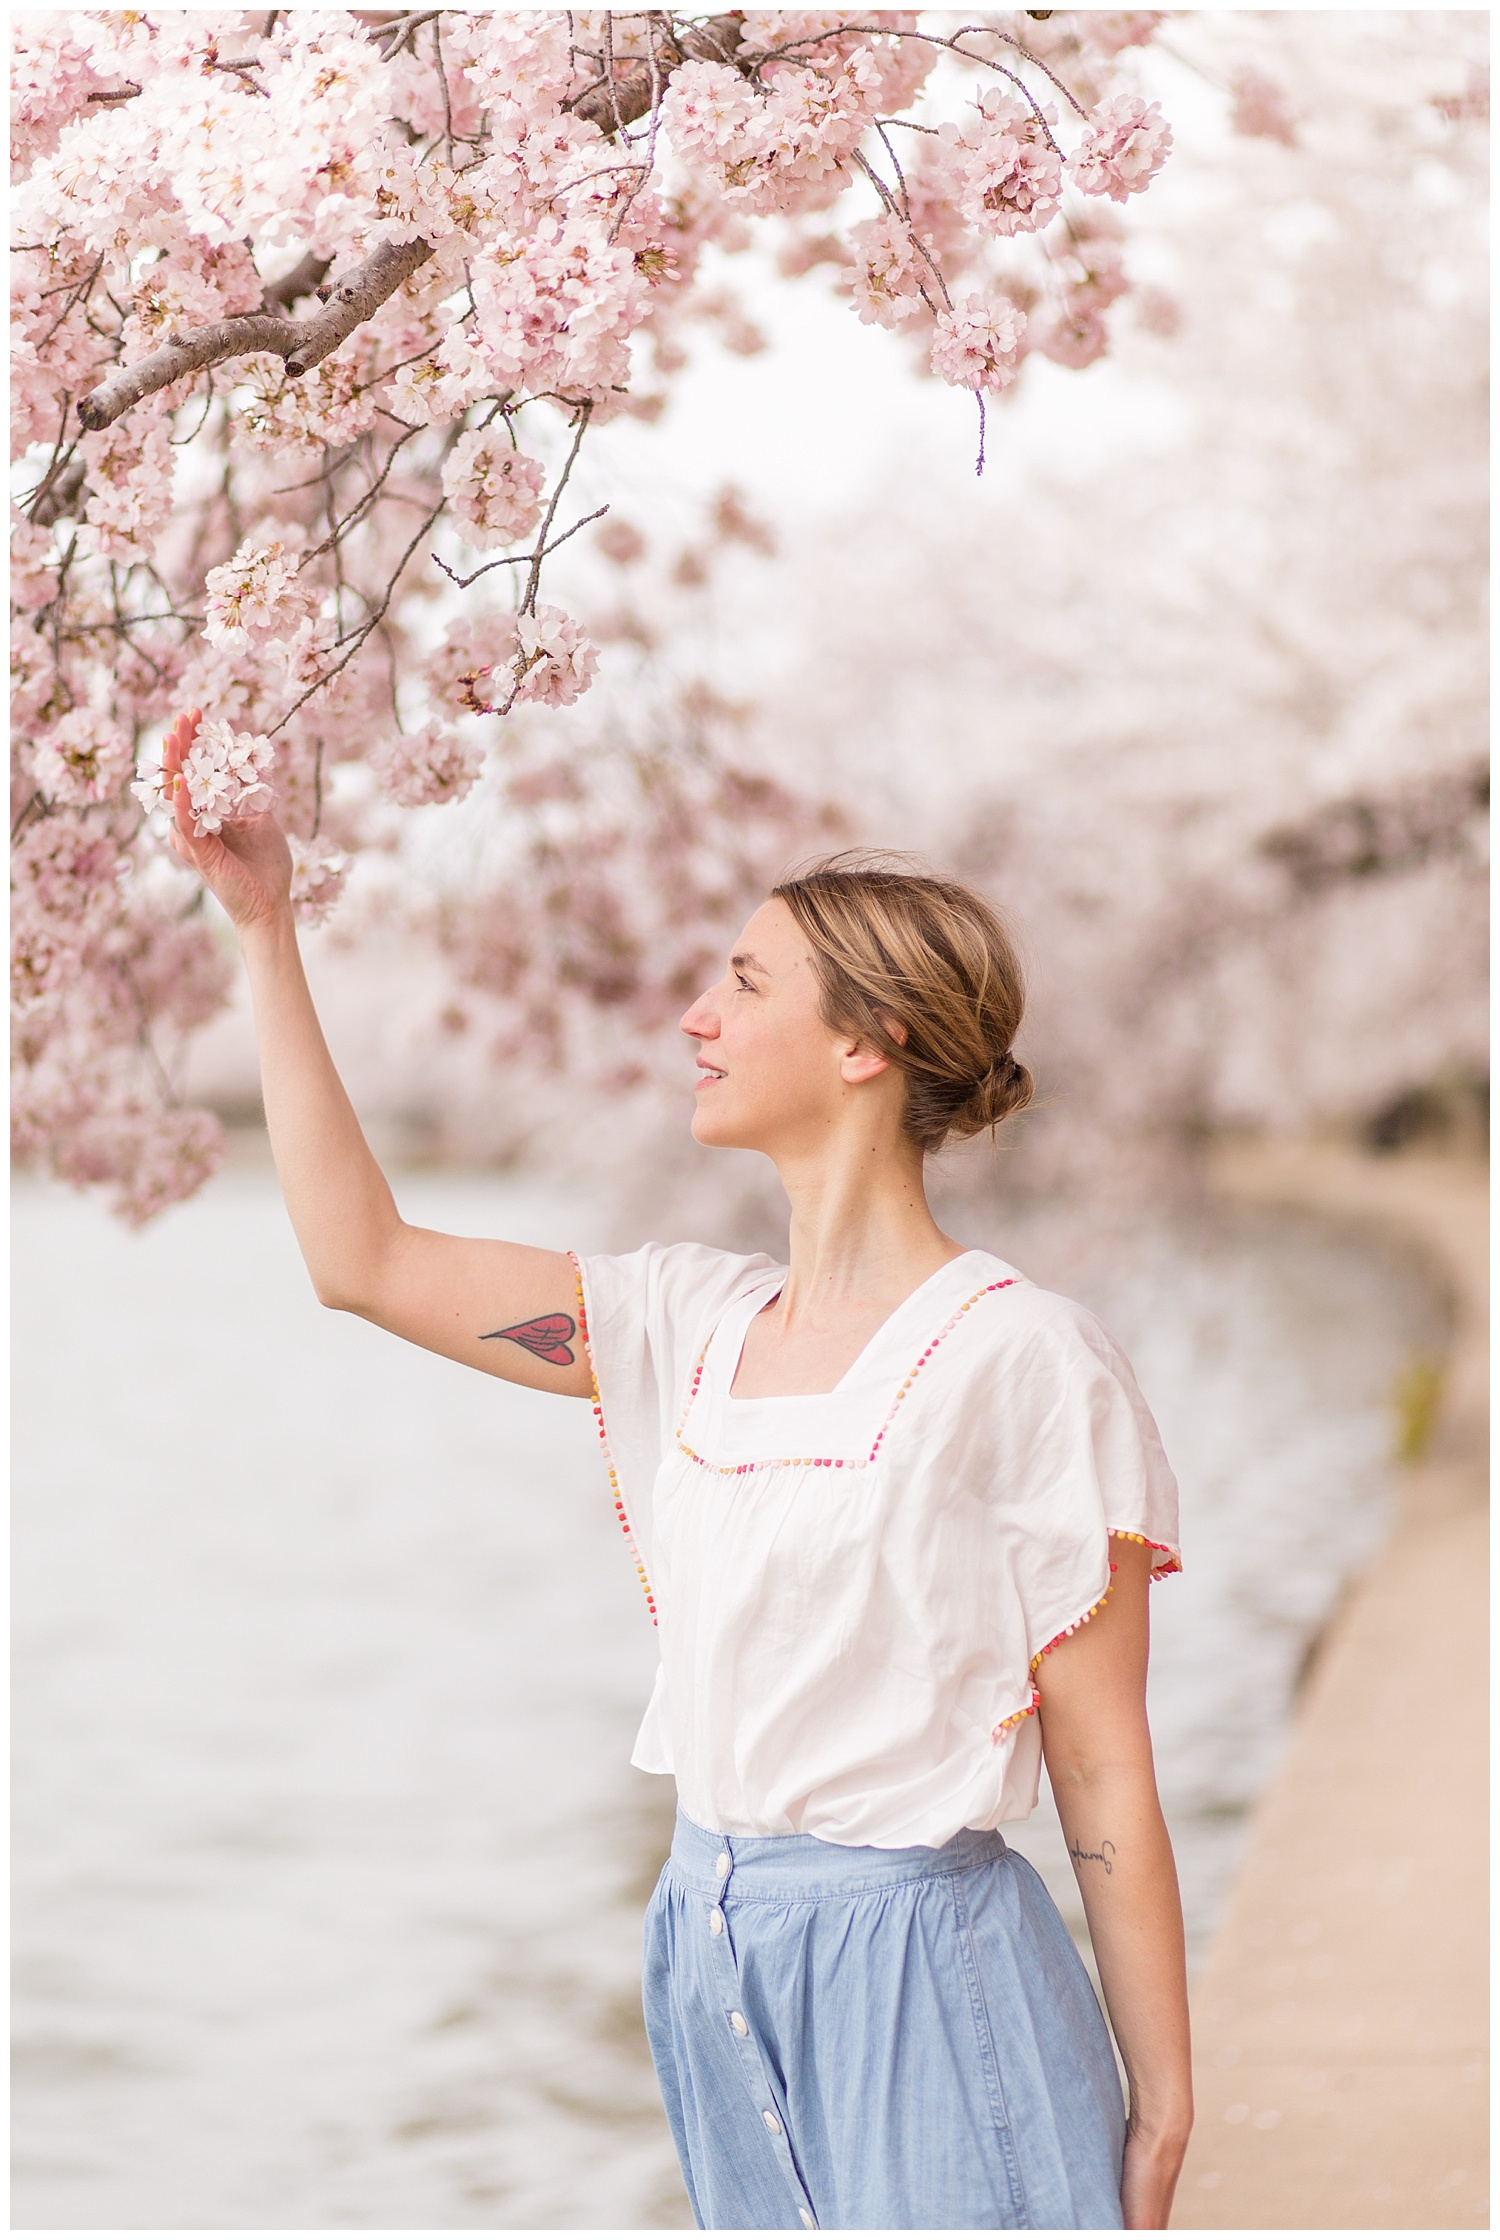 emily-belson-photography-cherry-blossom-dc-jessica-01.jpg